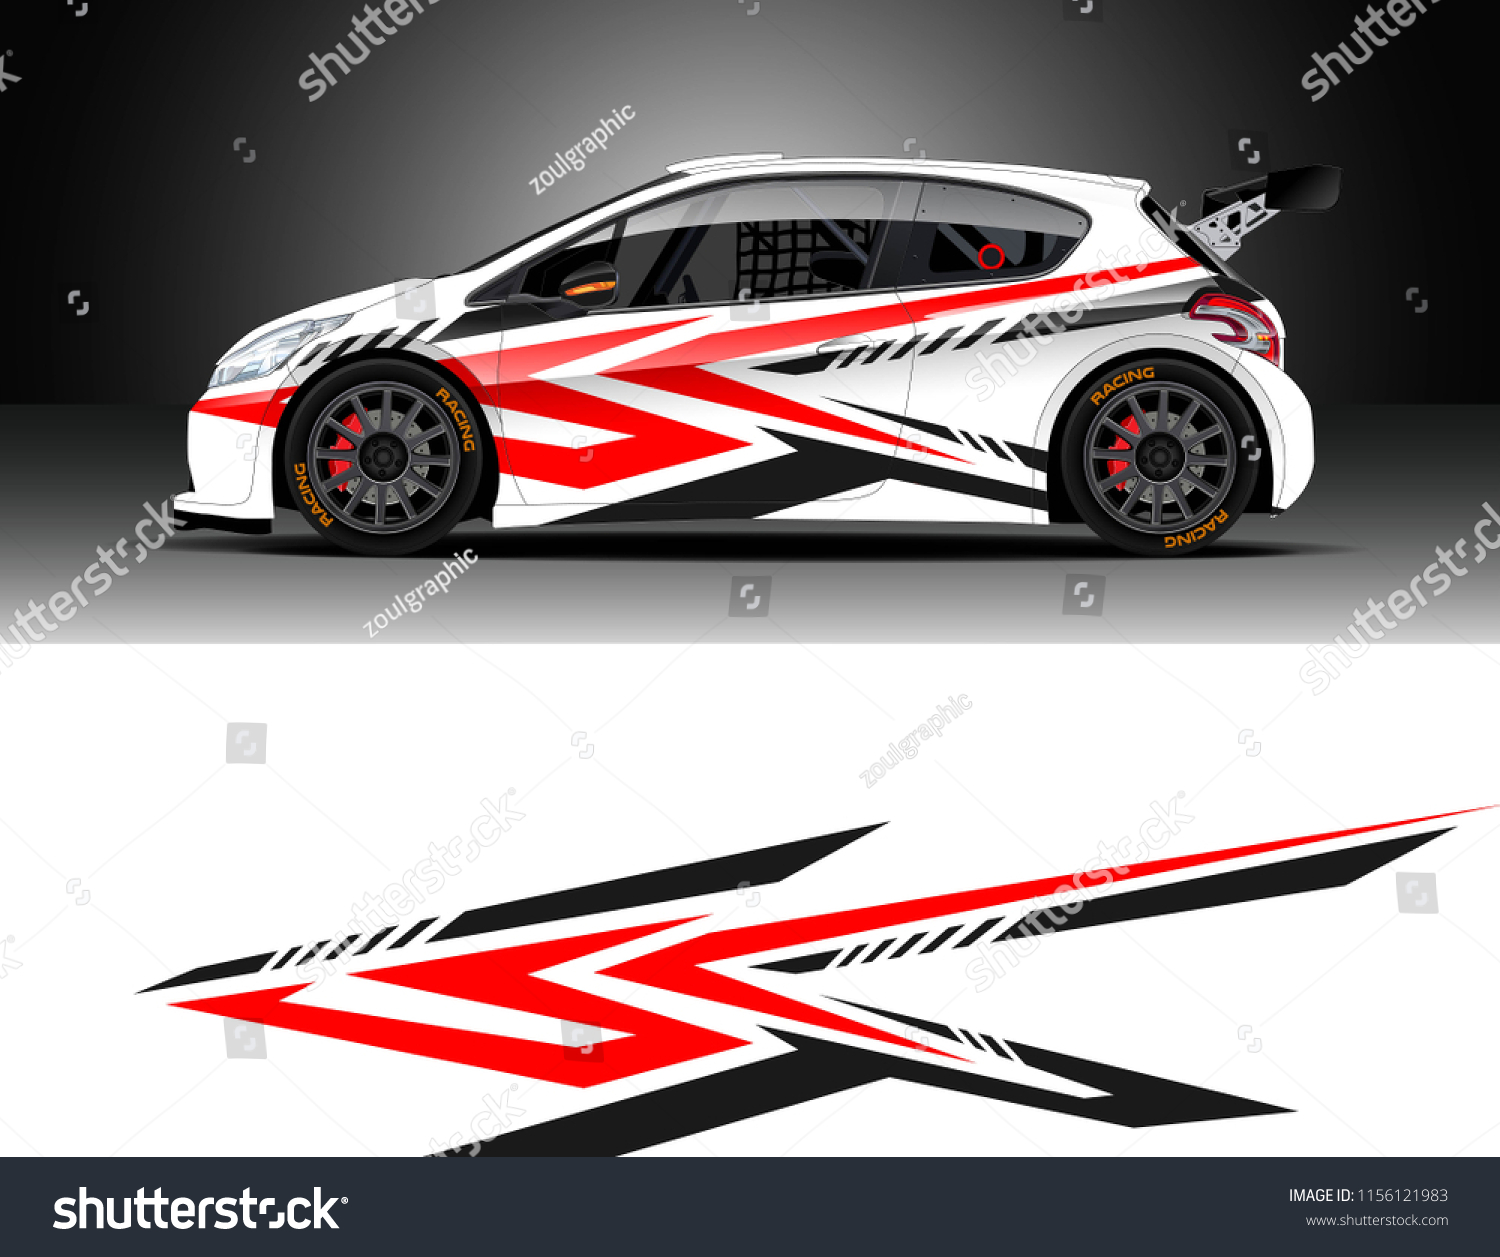 Car decal design vector graphic abstract stripe racing background designs for vehicle race rally adventure and car racing livery